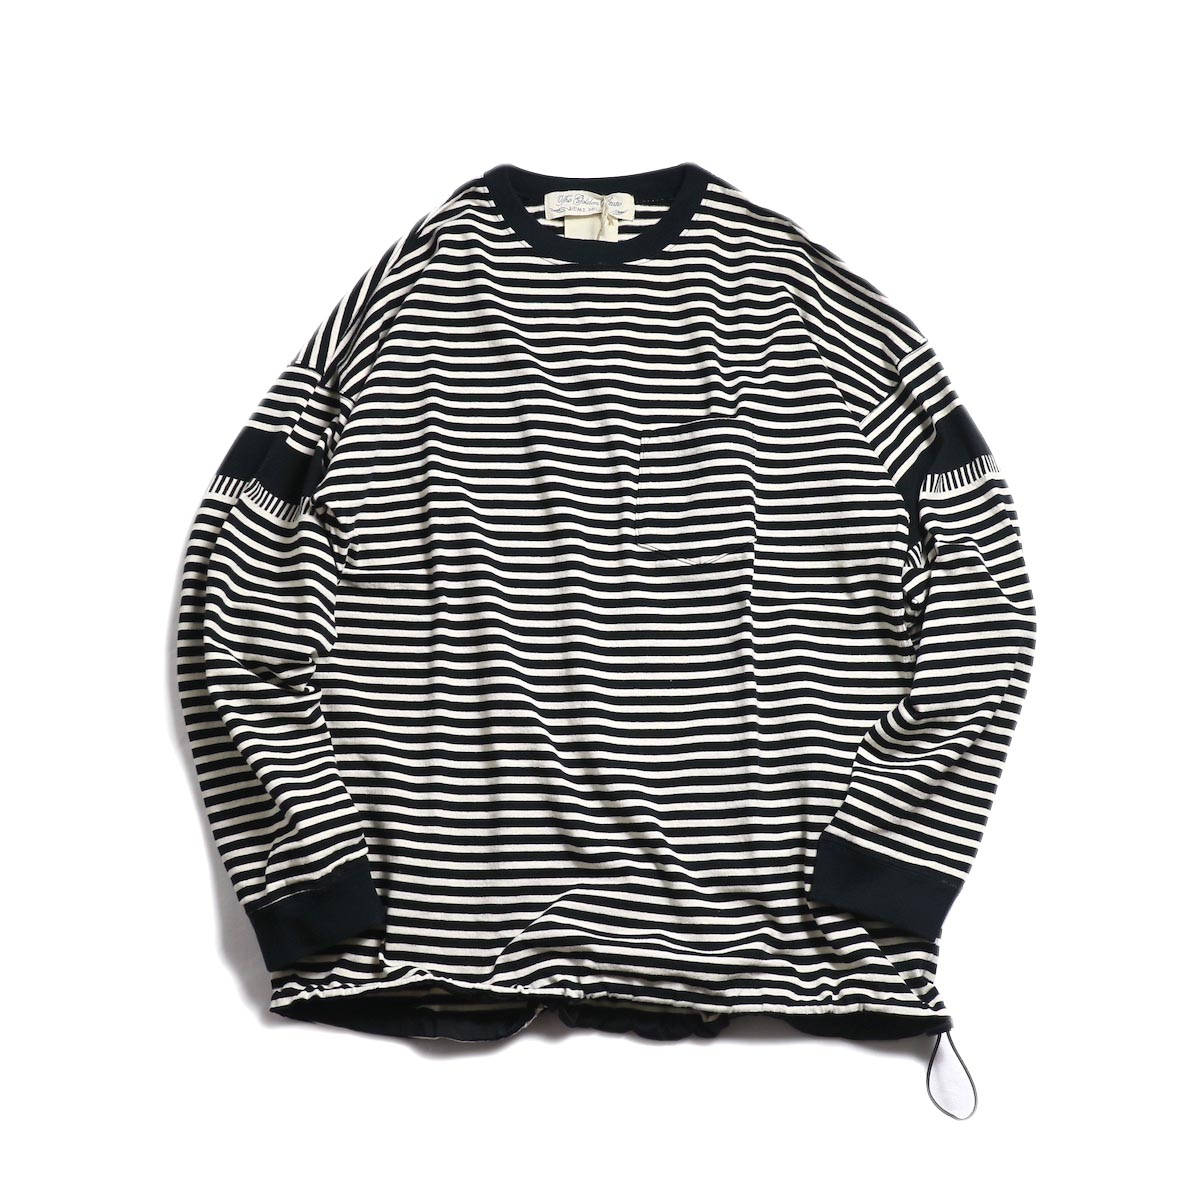 REMI RELIEF / 切替ボーダーロンTee (RN18249092) -OFF×BLACK